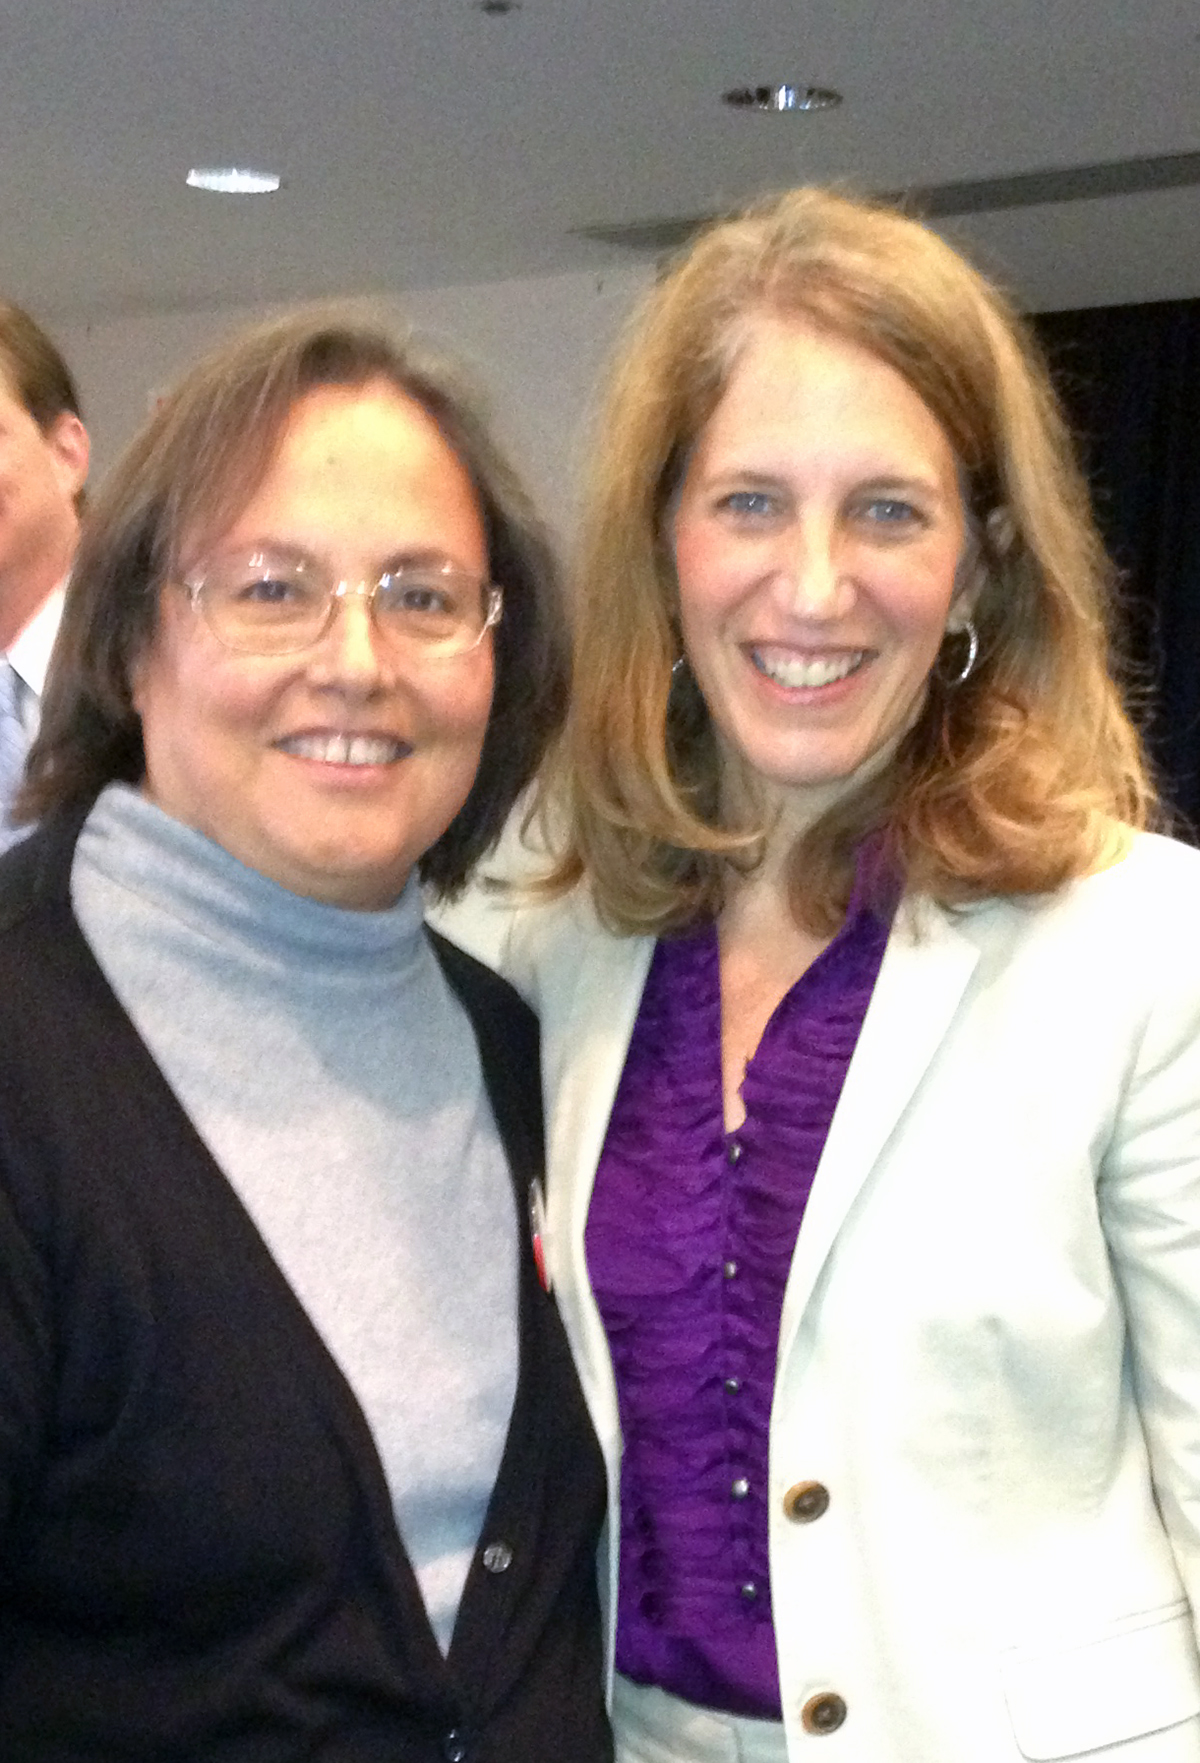 Cathy Abramson and Sylvia Burwell